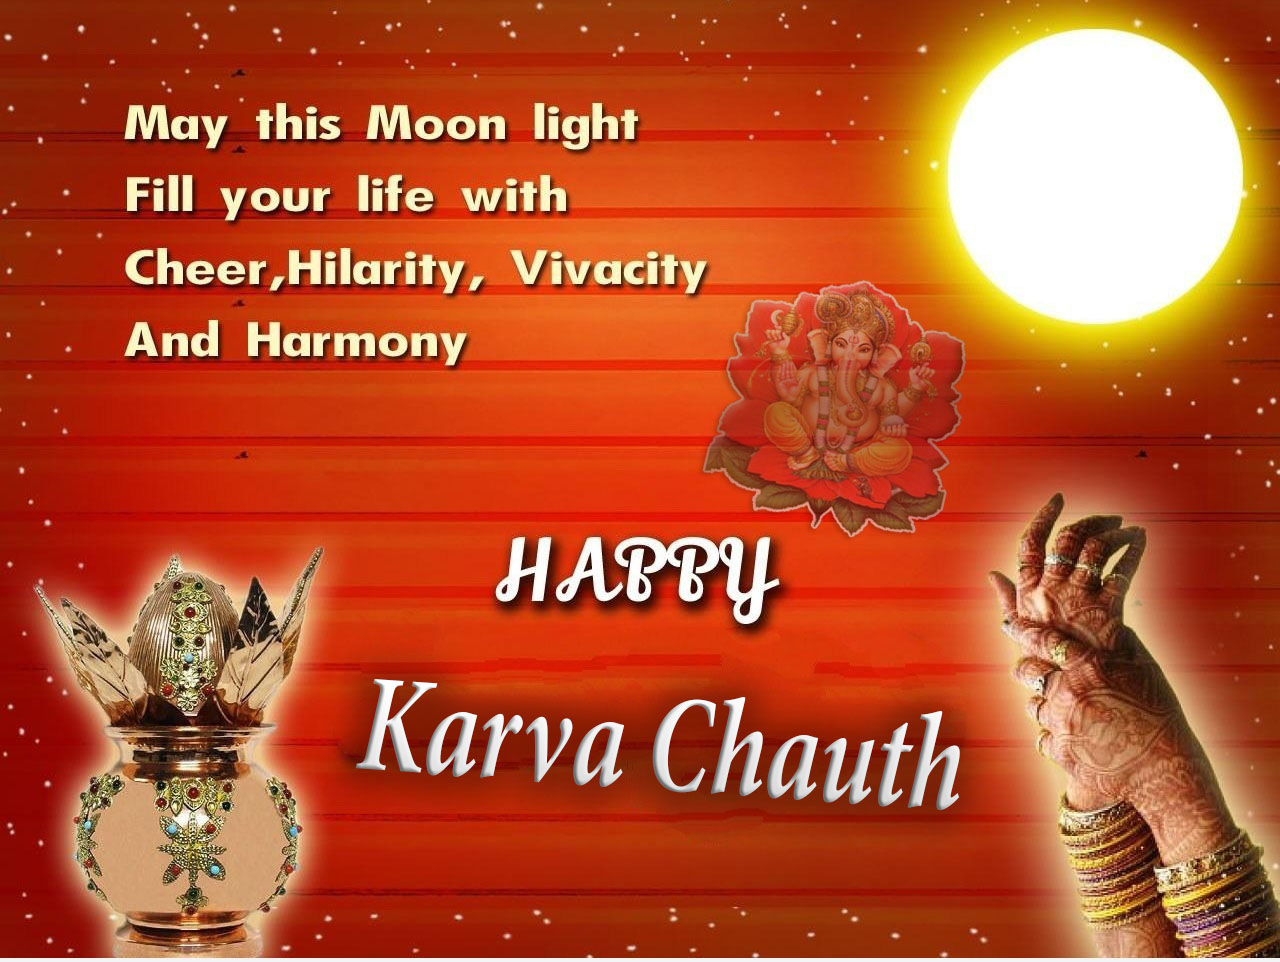 Karva chauth greetings images m4hsunfo